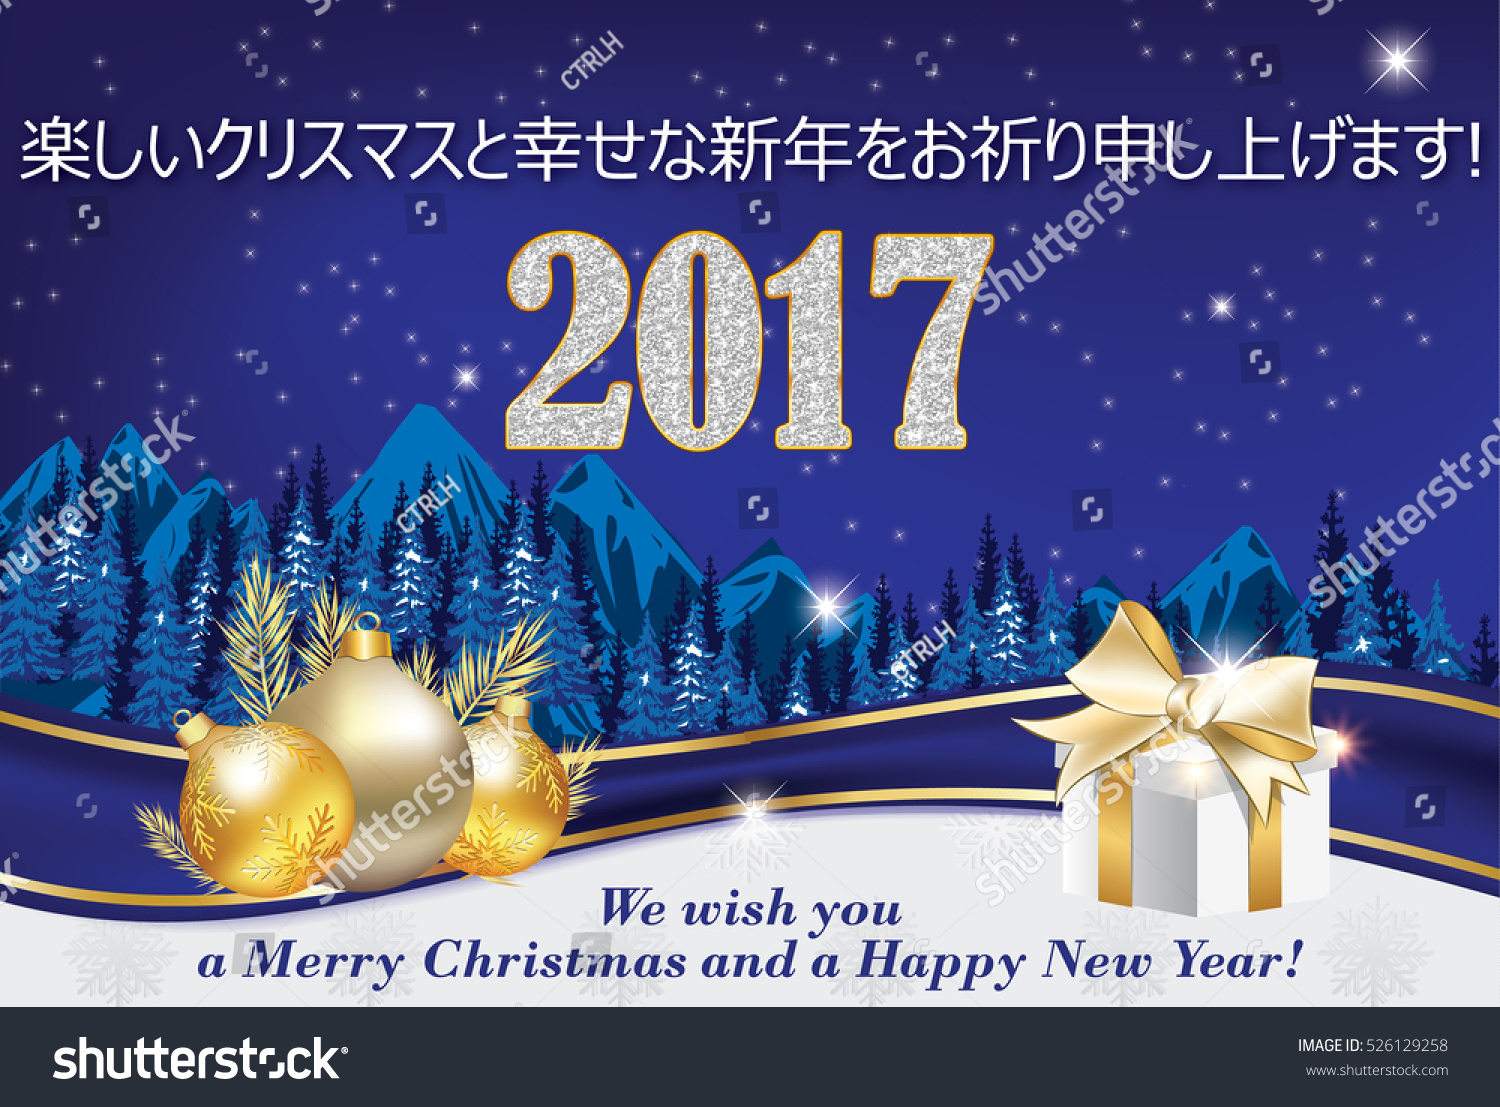 Winter Seasons Greetings Message Japanese Language Stock